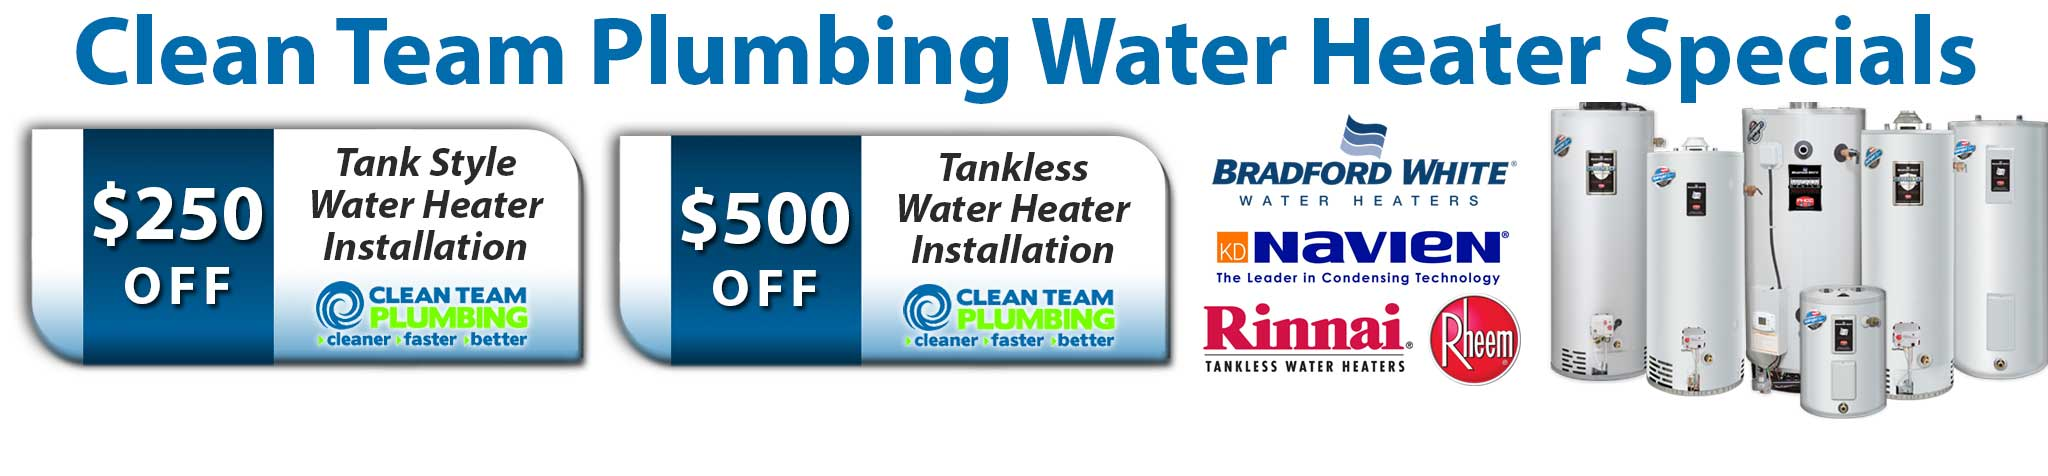 Clean Team Plumbing Water Heater Special